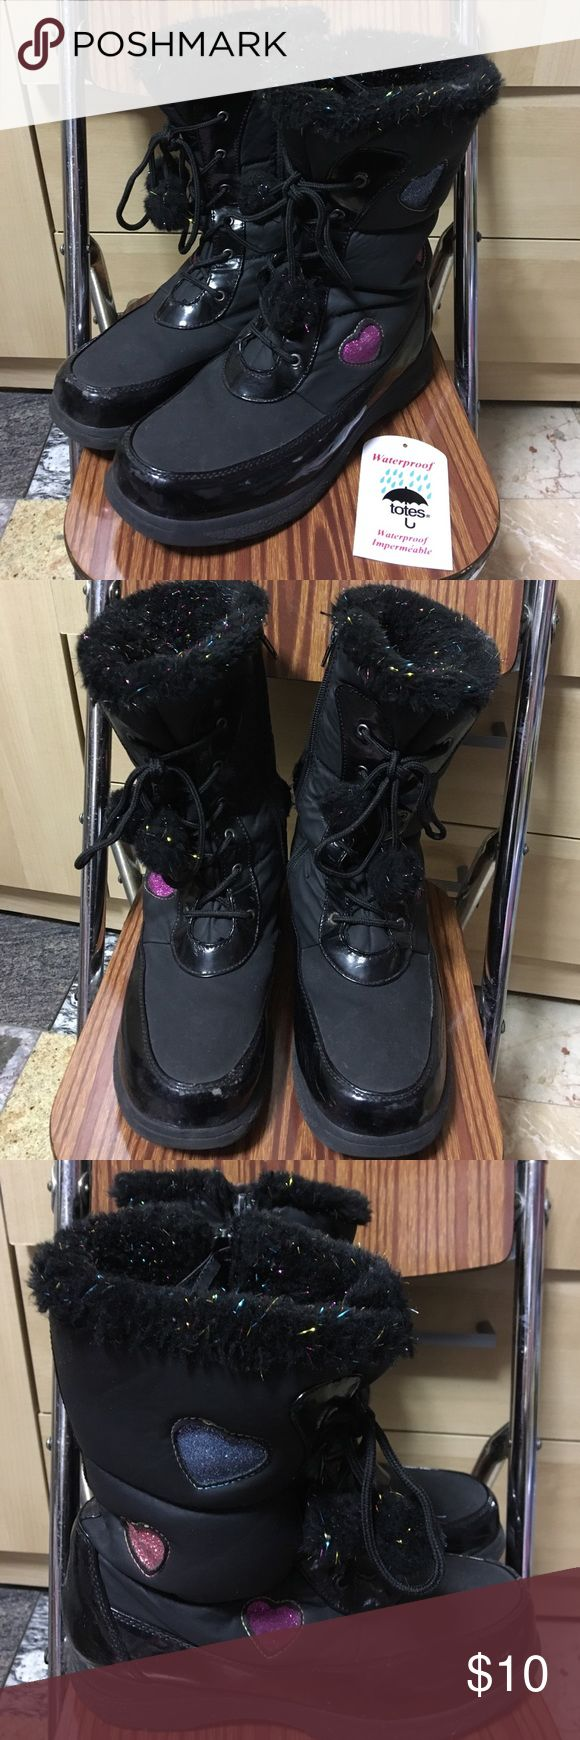 Totes Girl/Sz5 Winter Boots Used Totes Winter Boots from Kohls   Style is Casey Black   For Juniors cold weather snow/rain boots in color a black color with sparkly hearts on the side and faux fur color   Size is girls Juniors 5, Or about US women's size 6.5, can fit 6 -7   Refer to photos for the size tag and condition   overall signs of wear and on the inner side of both boots next to zipper there is a tear, photo 4, price reflects, but still fully functional   Questions welcomed Totes…